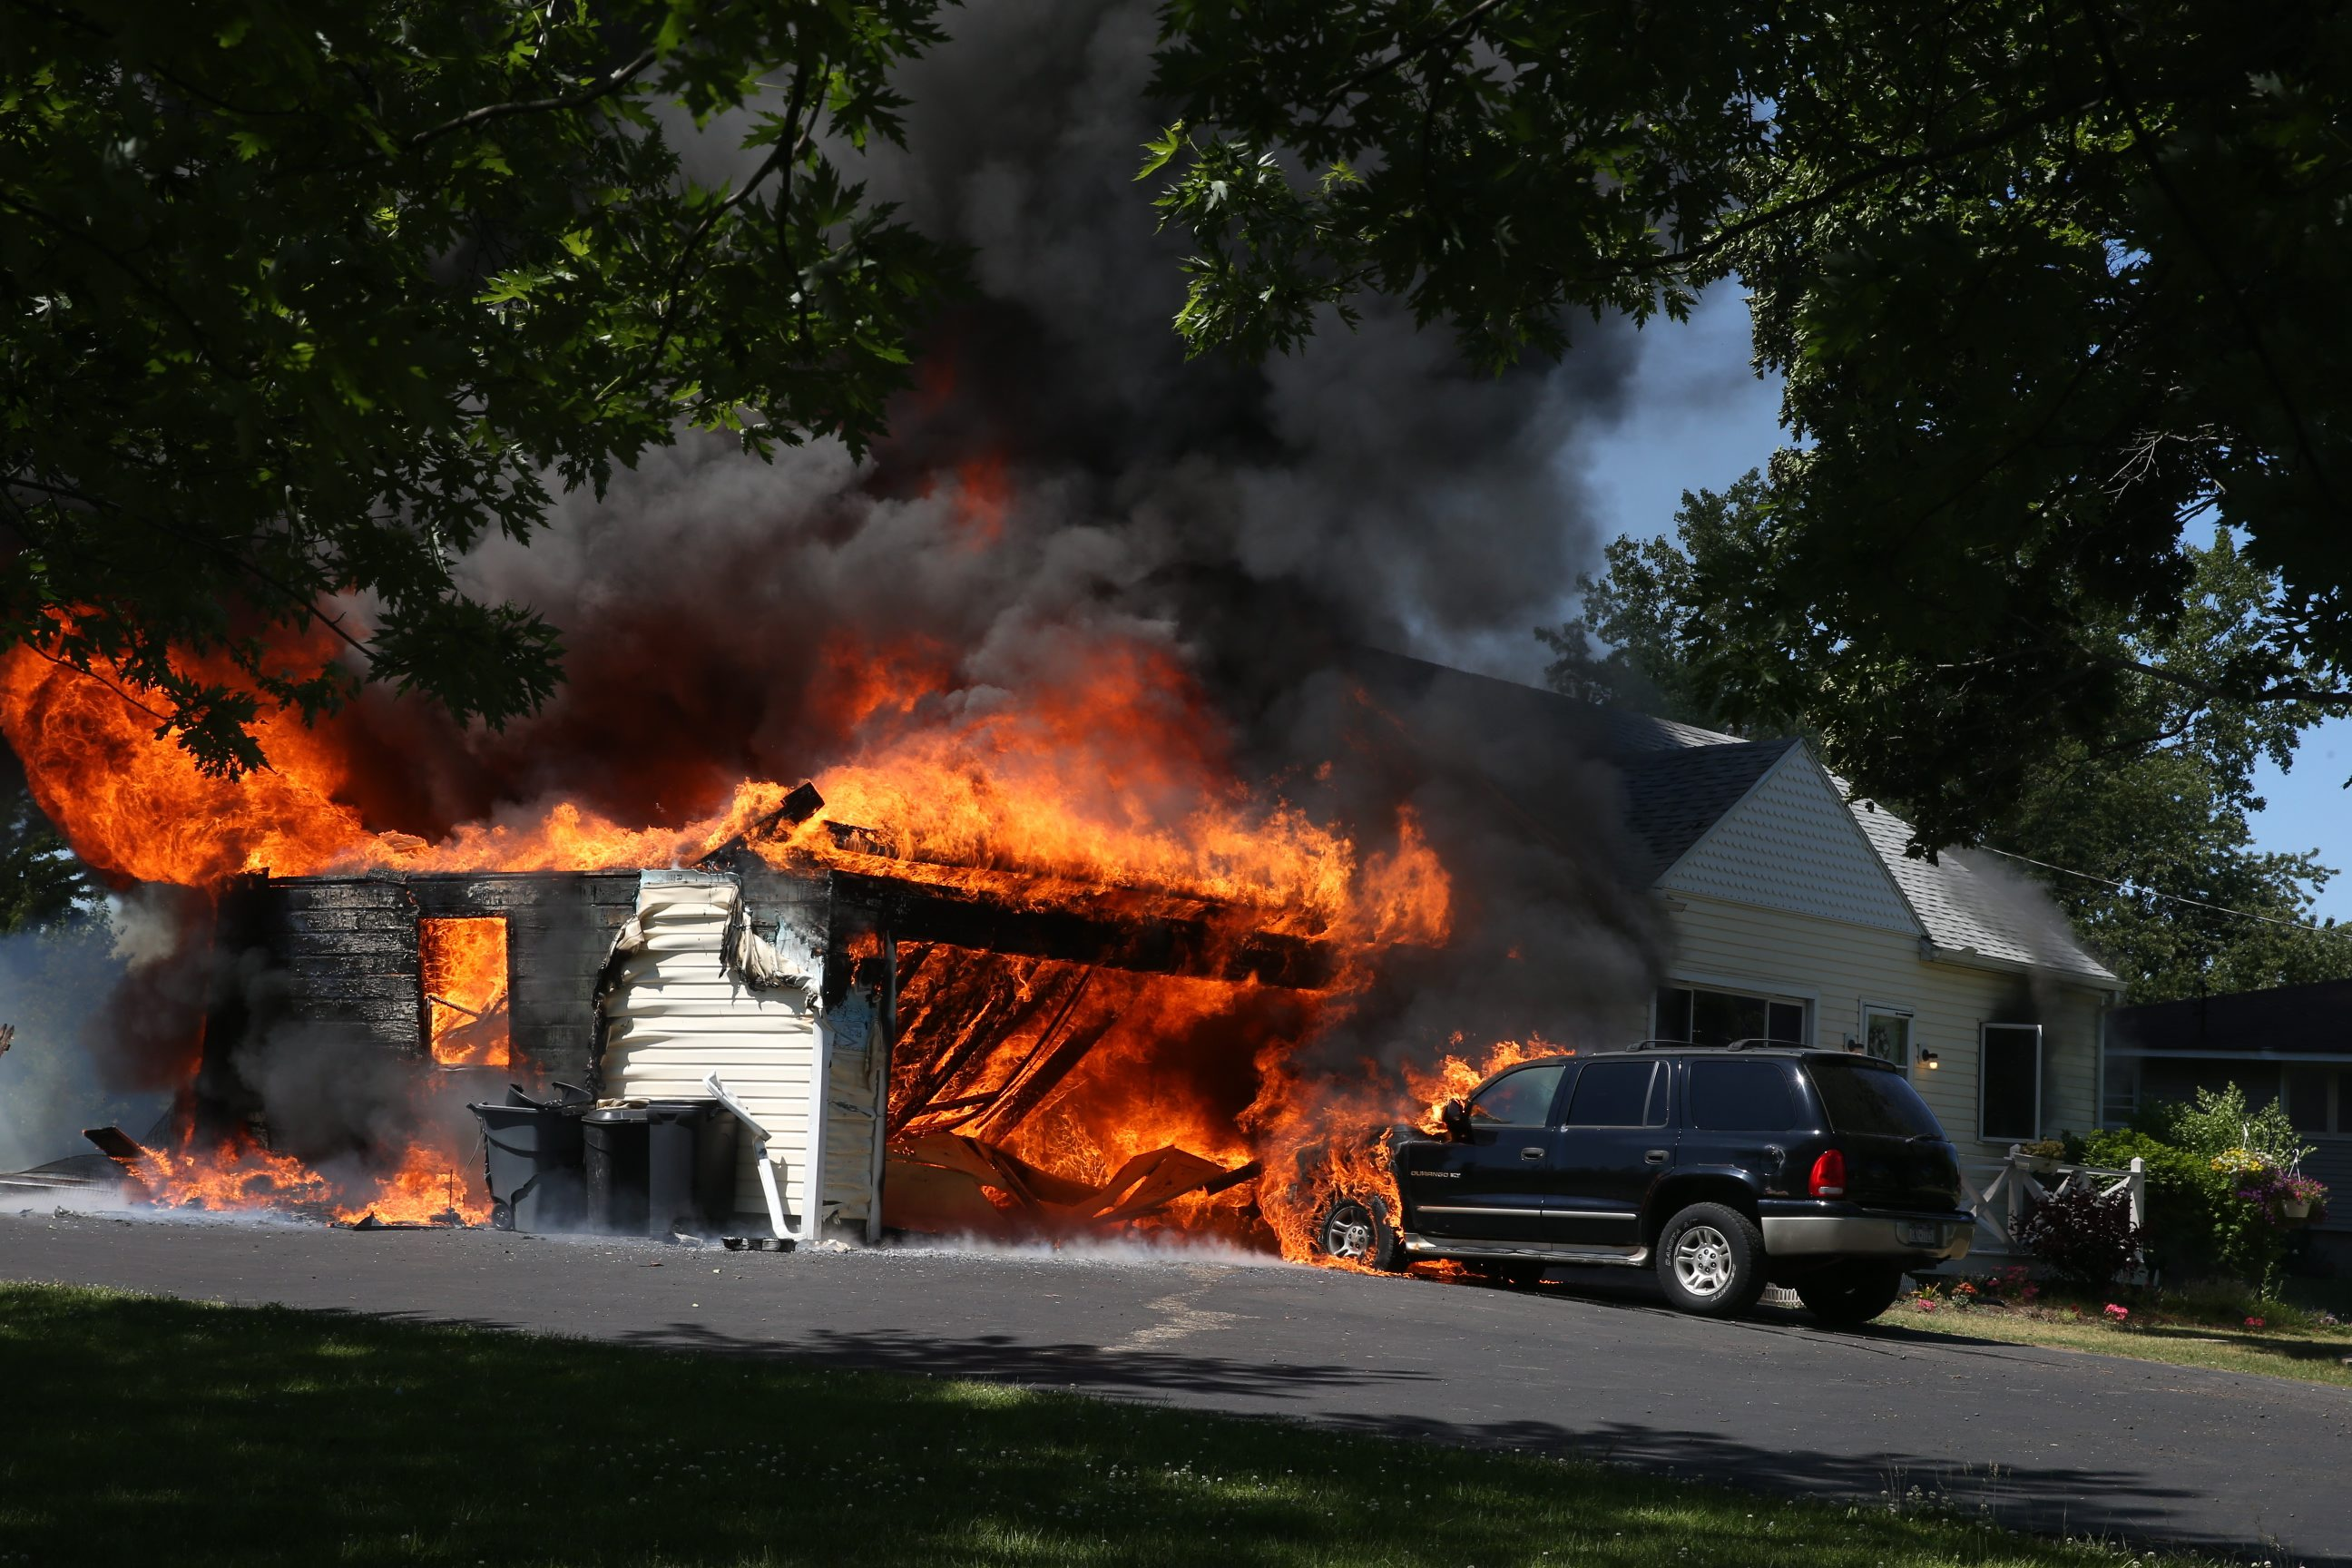 A garage fire that spread to attached home at 6108 Strauss, in Lockport, N.Y., on Friday June 17, 2016.  (John Hickey/Buffalo News)